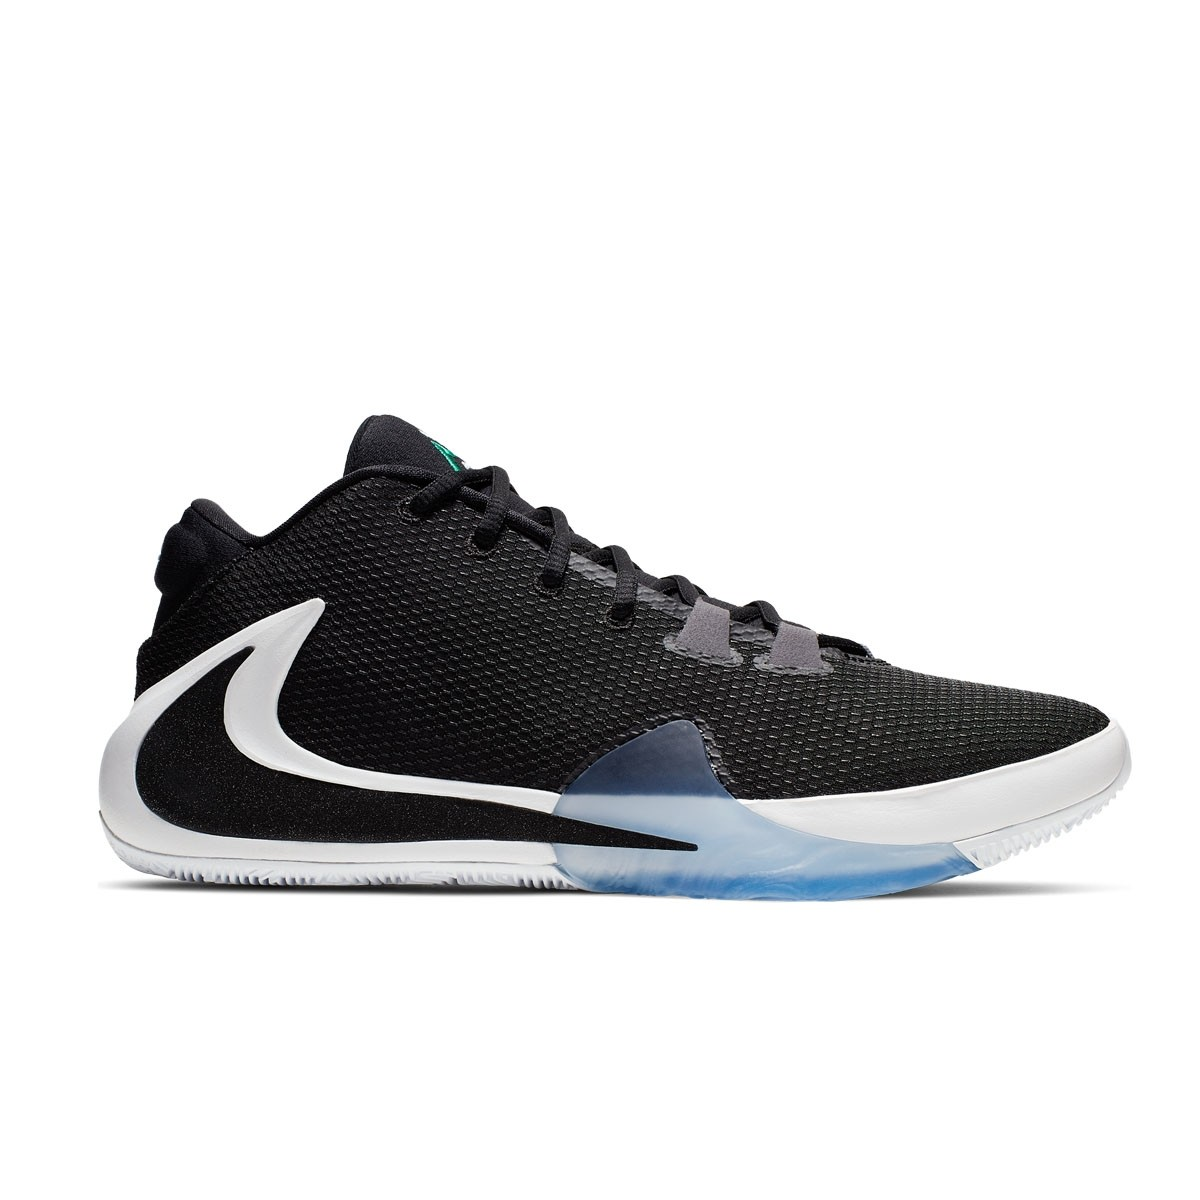 Nike Zoom Freak 1 'Black & White'